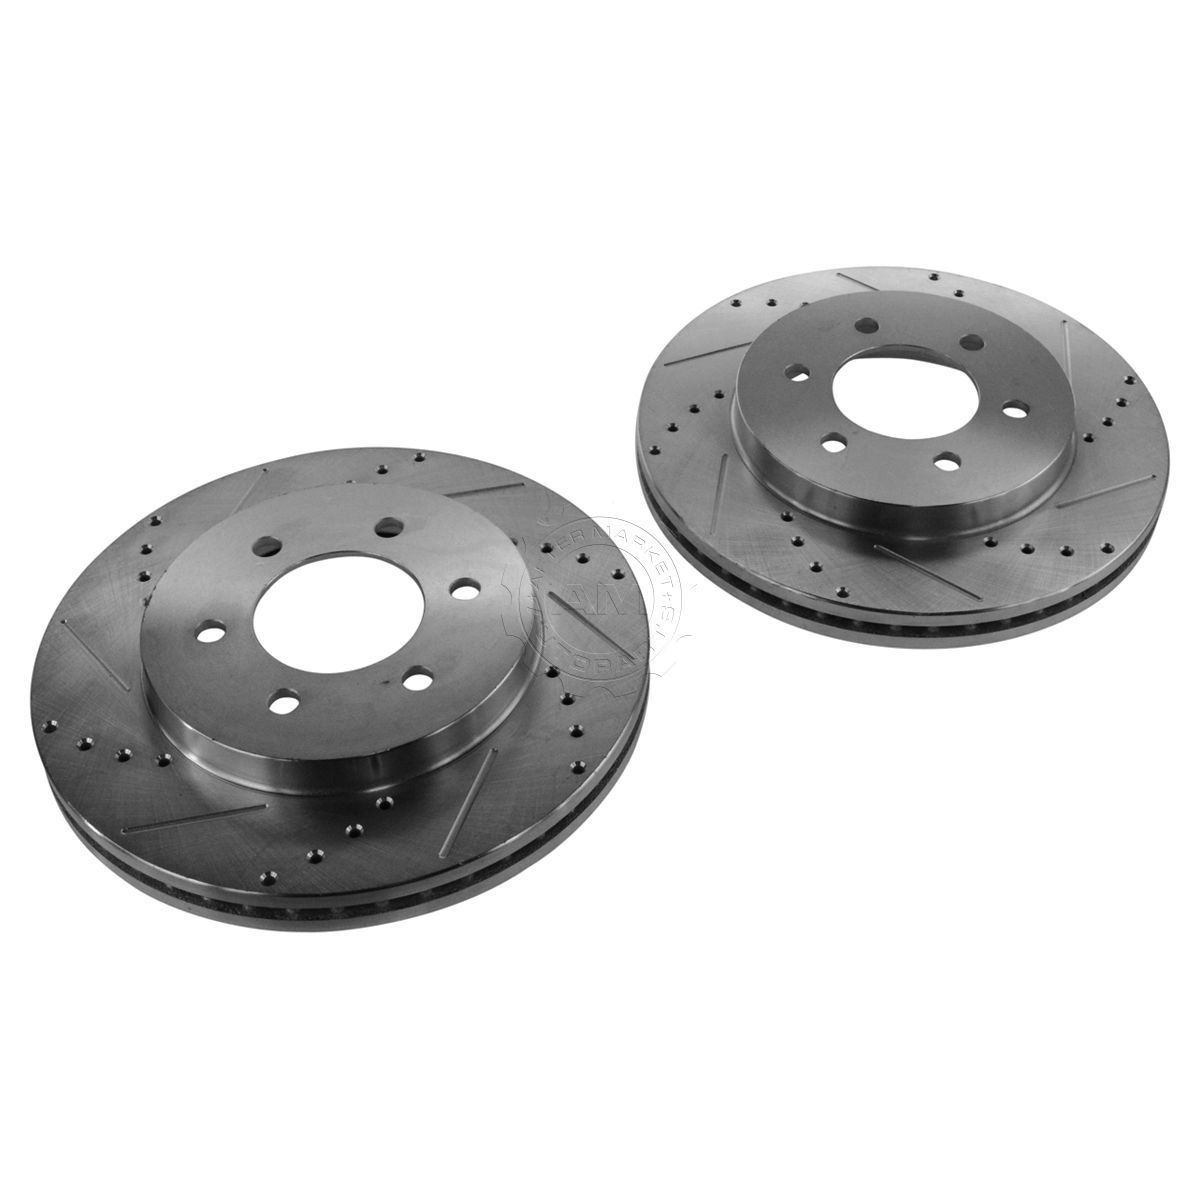 New Nakamoto Performance Drilled & Slotted Front Zinc Coated Disc Brake Rotor Pair